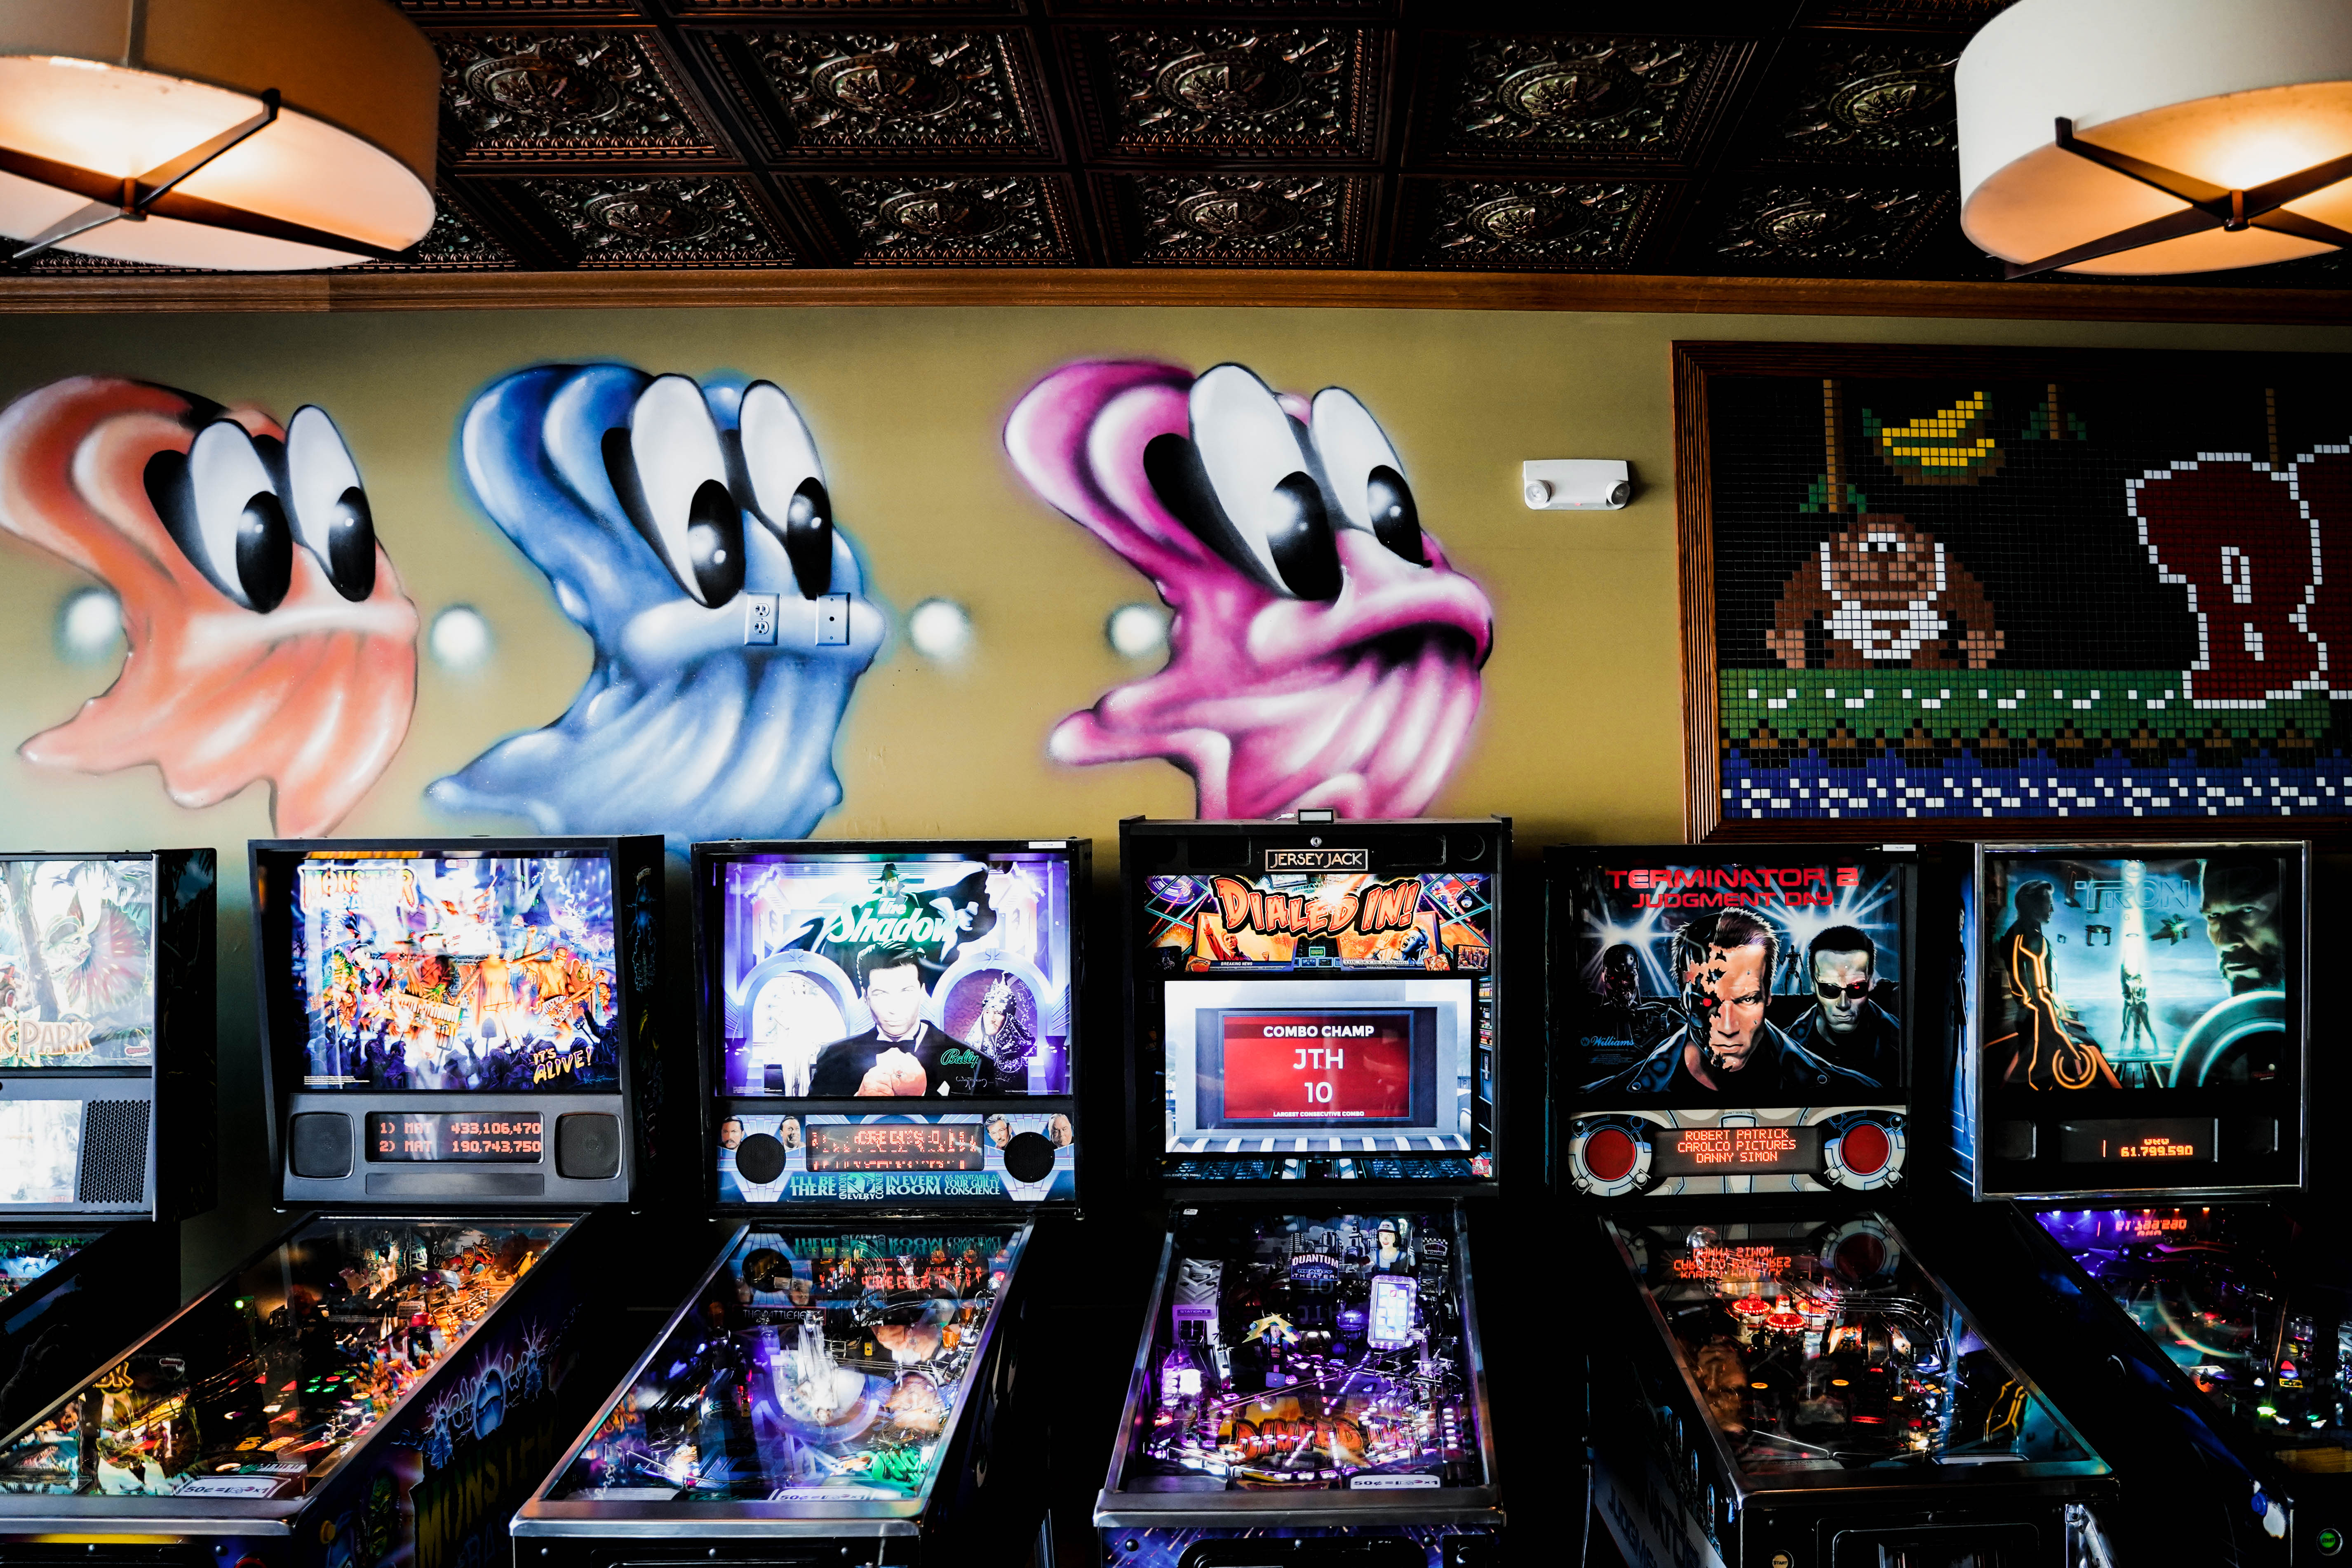 Jake's Brings Arcade to 14th